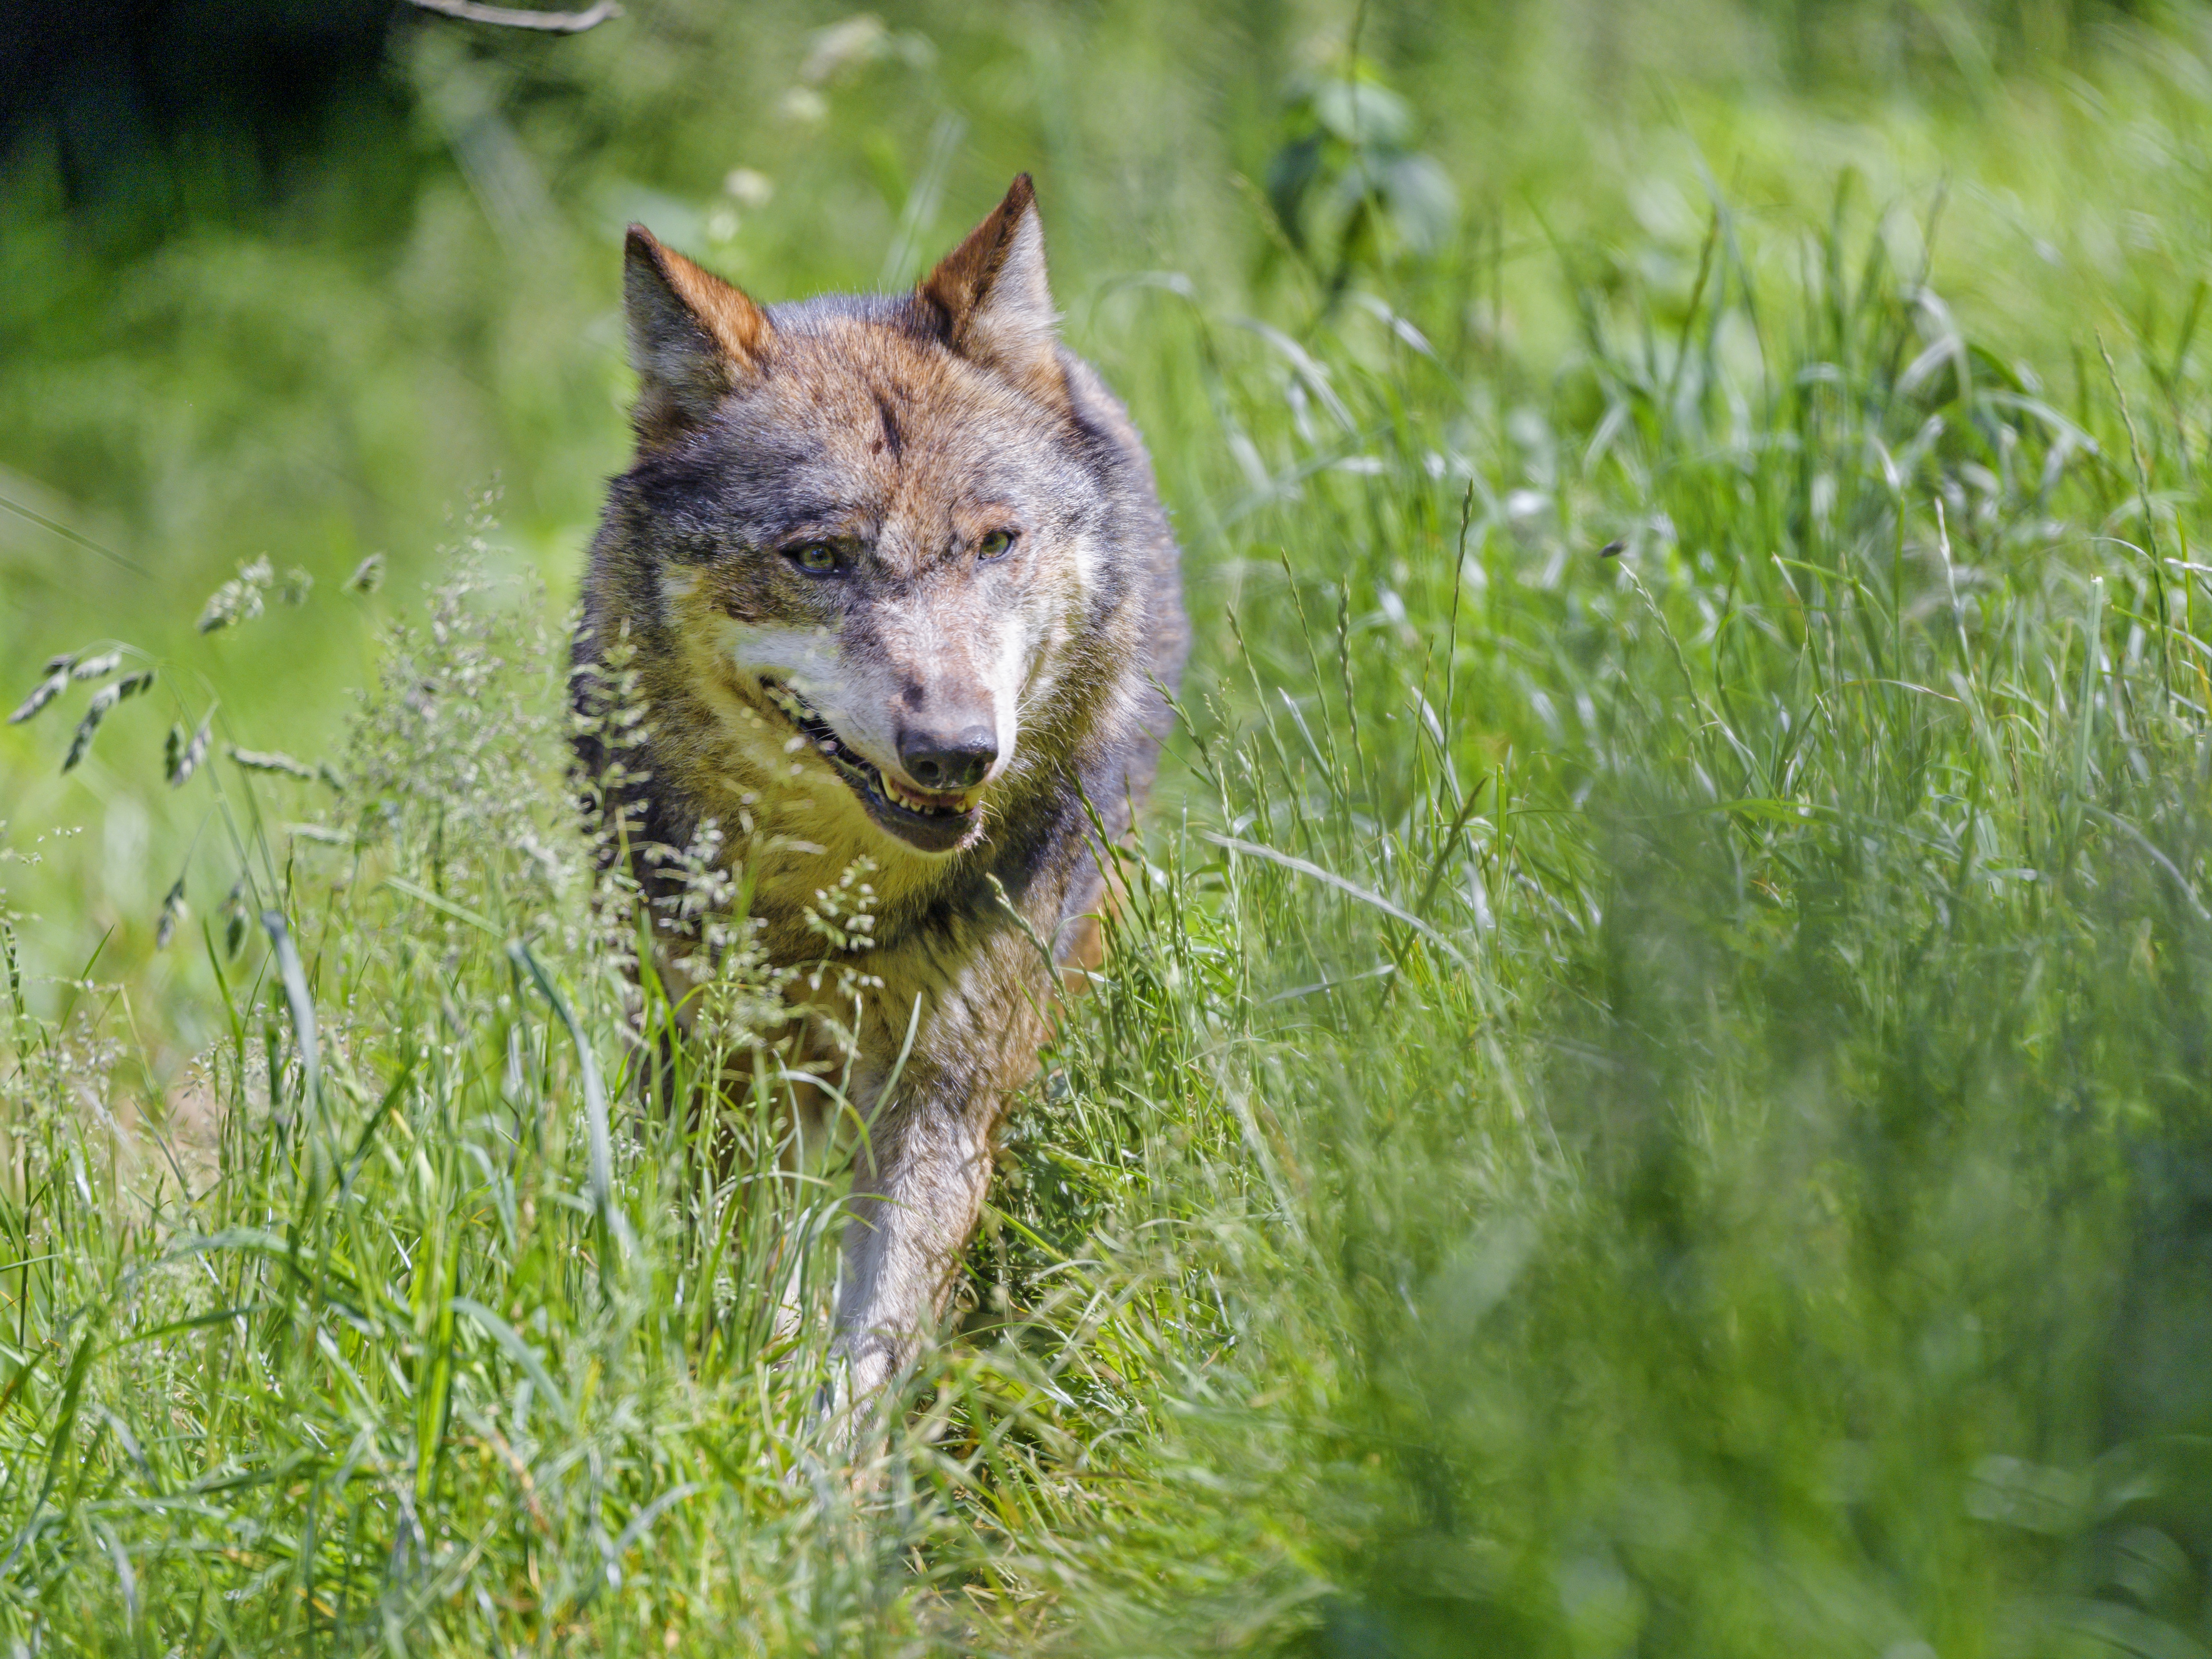 123518 download wallpaper Animals, Wolf, Predator, Animal, Grass screensavers and pictures for free